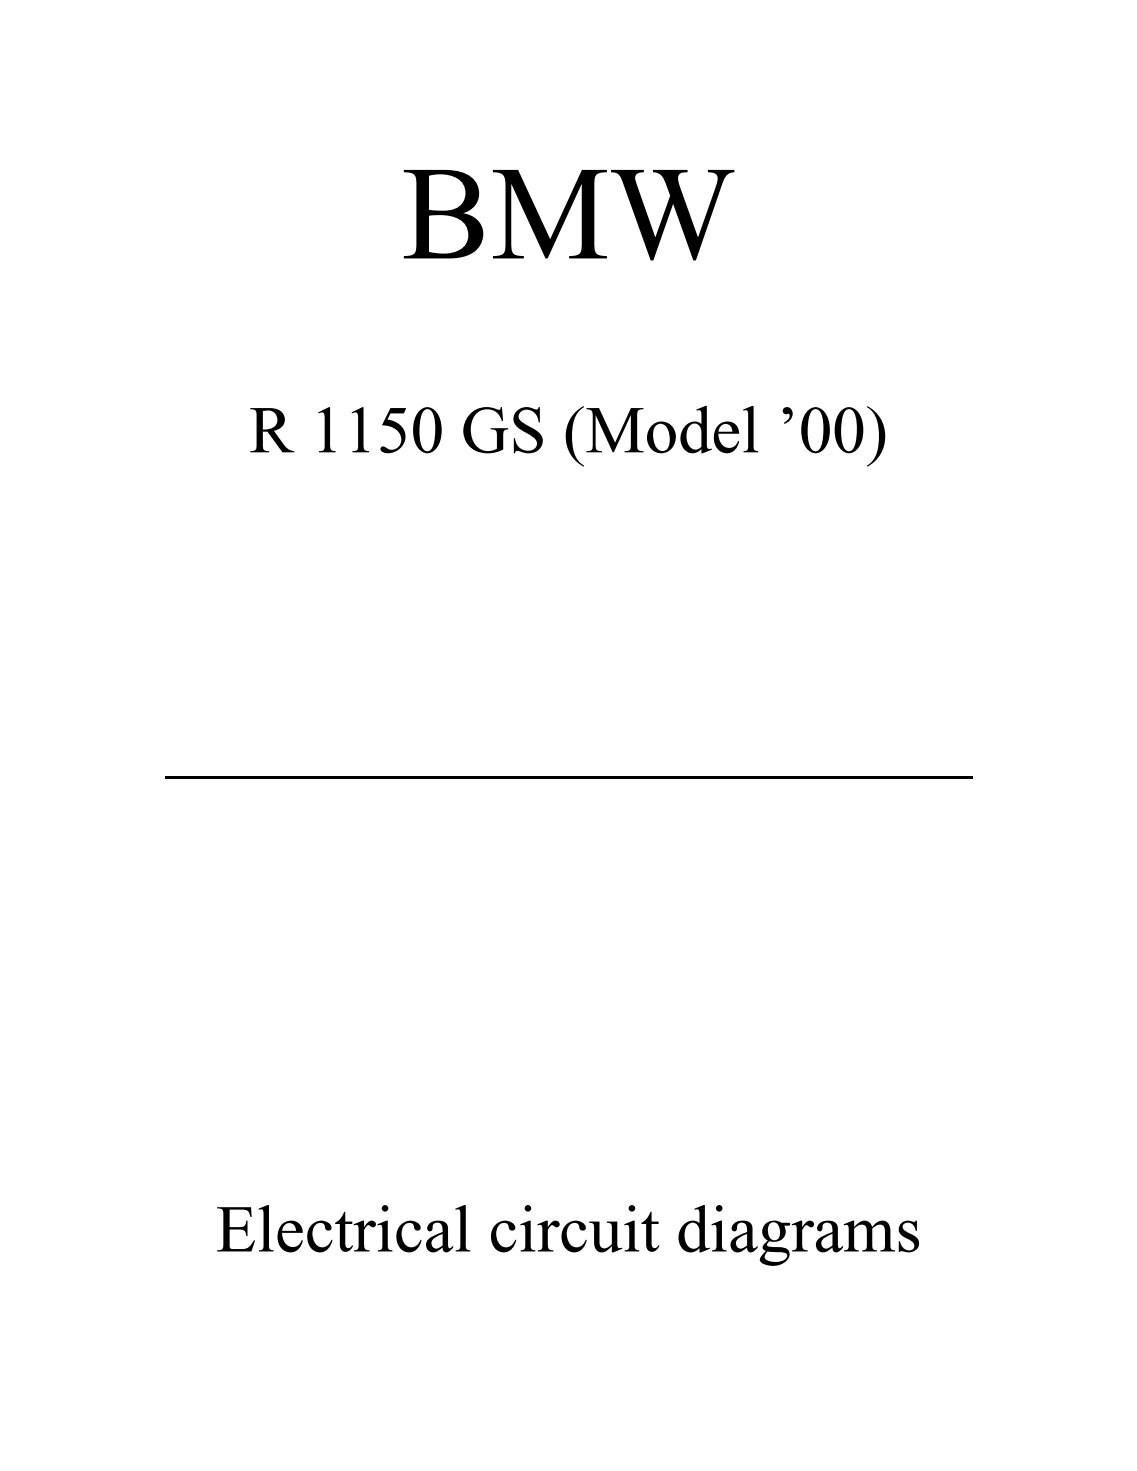 medium resolution of 2 free magazines from bmwgsclub nl bmwgsclub nl r 1150 gs electrical circuit diagrams